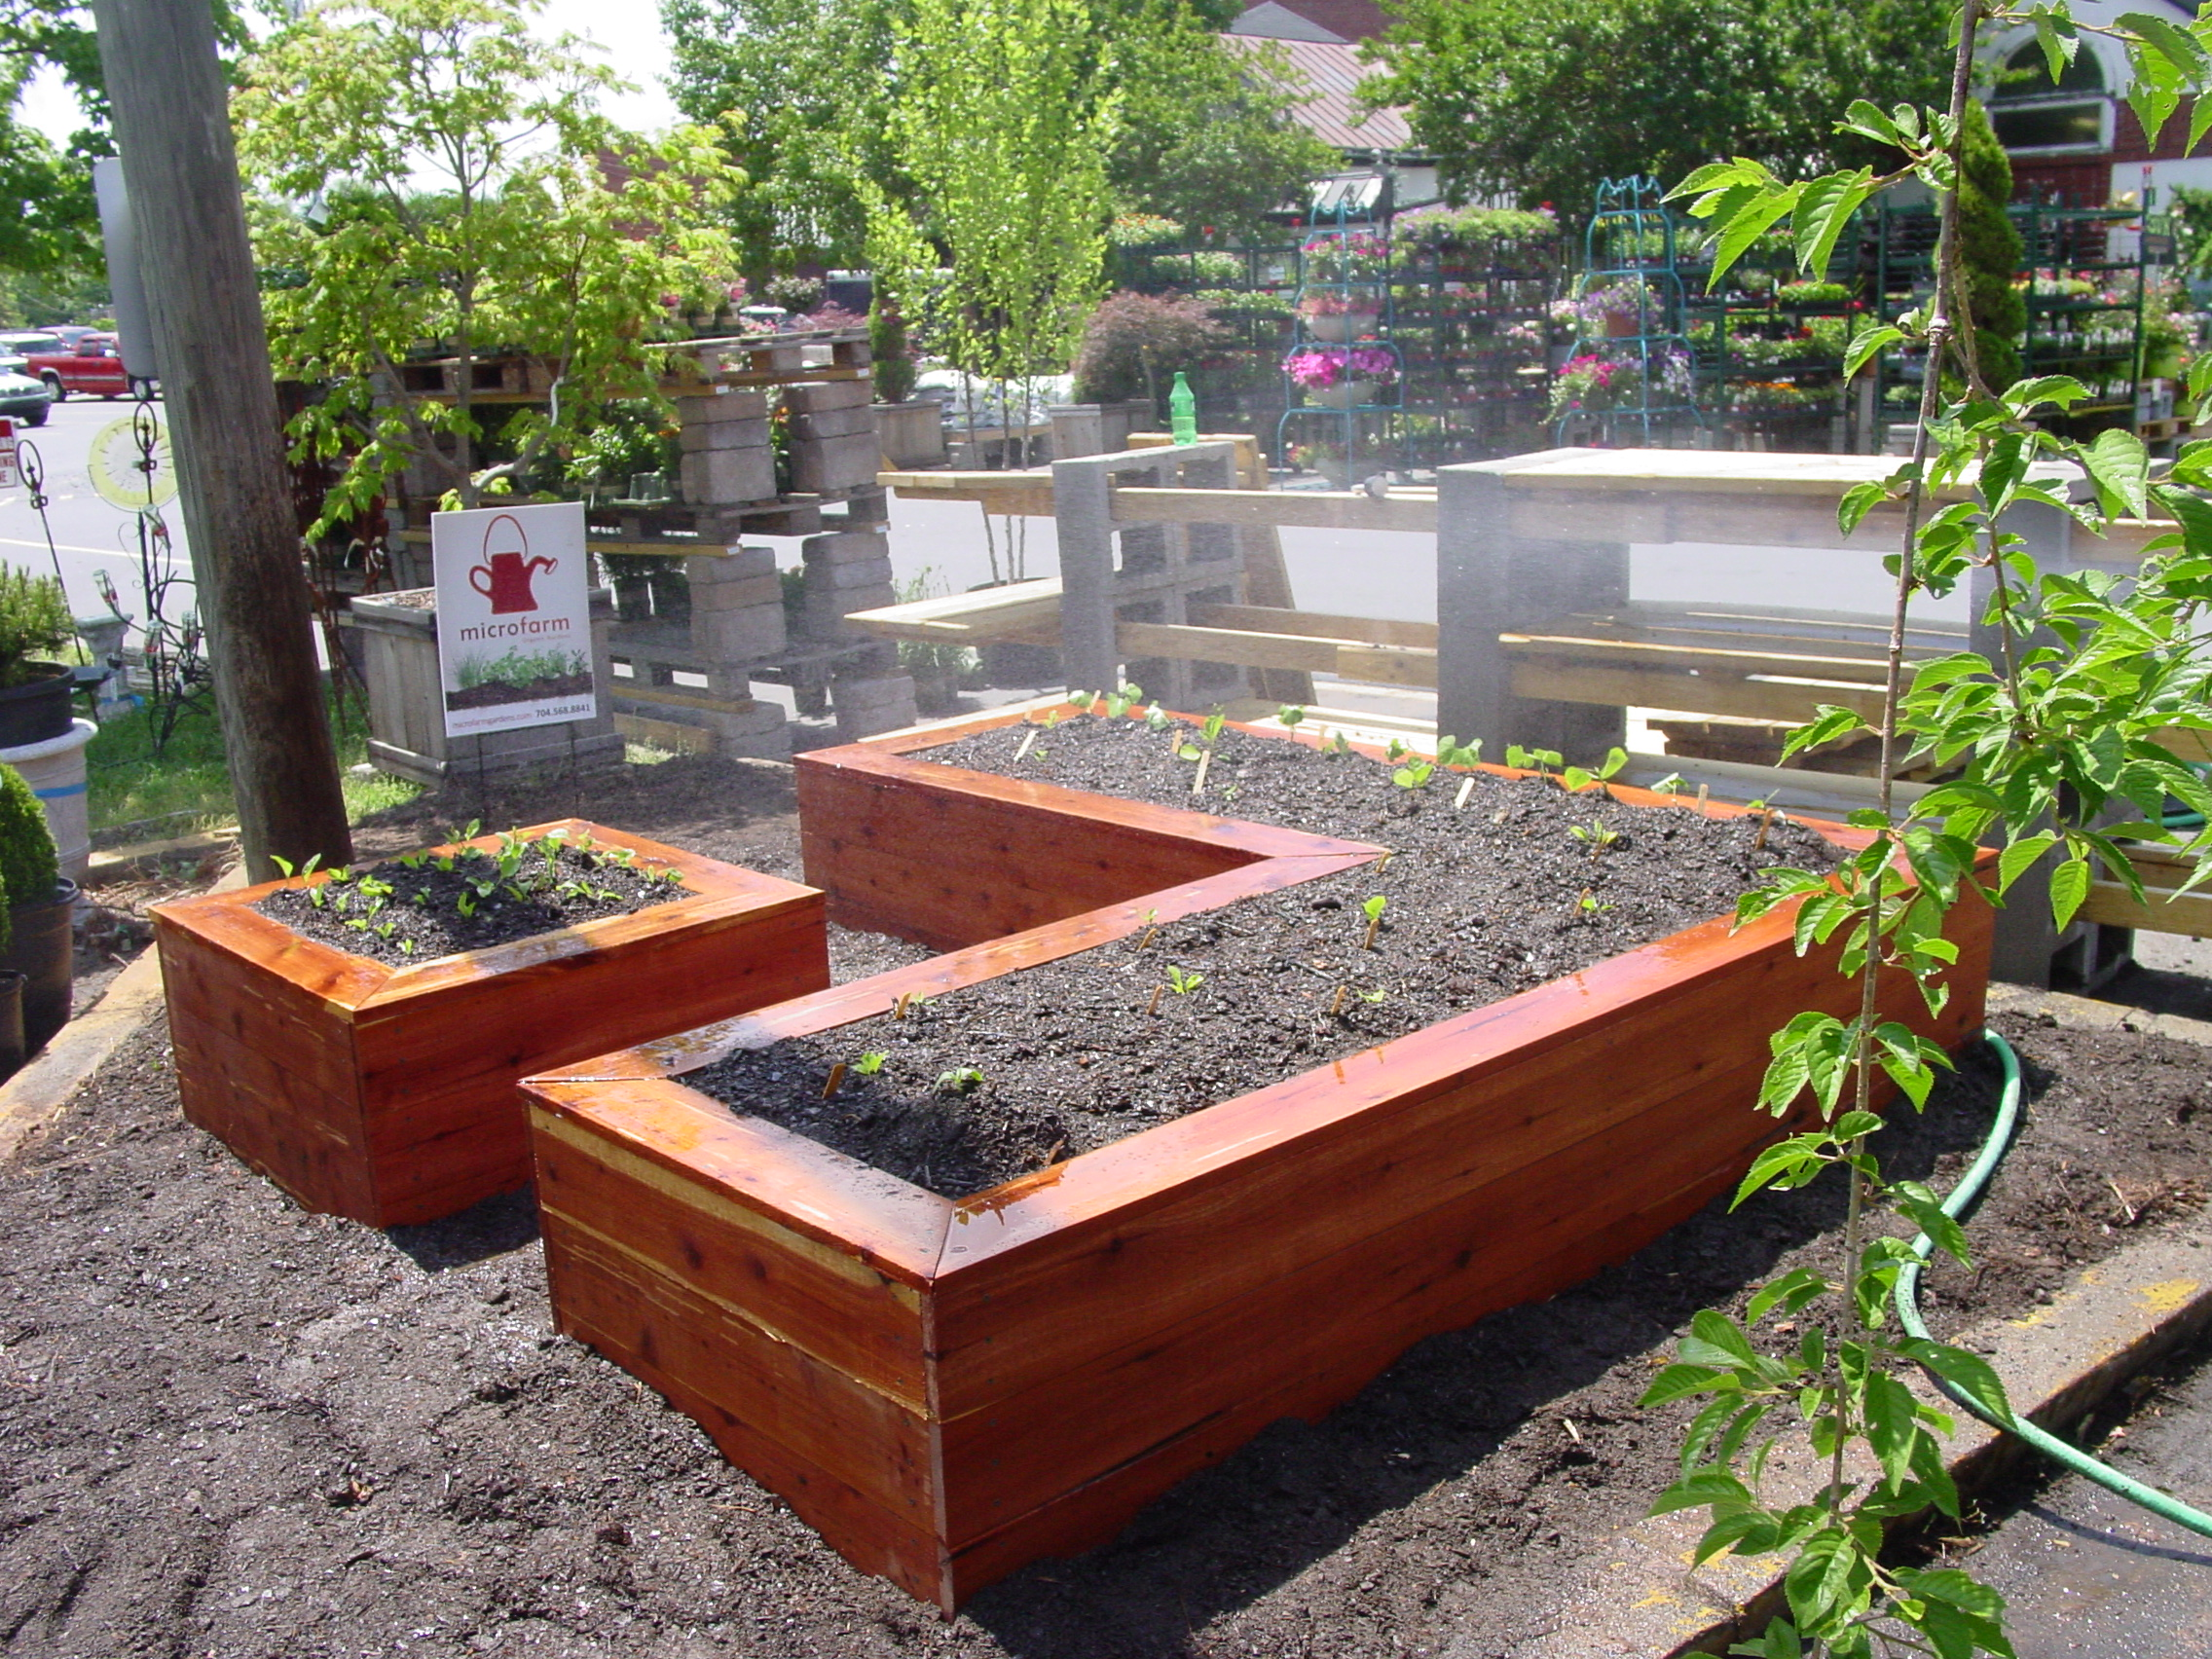 Garden Raised Bed Ideas Raised garden beds for sale in charlotte nc microfarm organic gardens kitchen garden raised beds workwithnaturefo